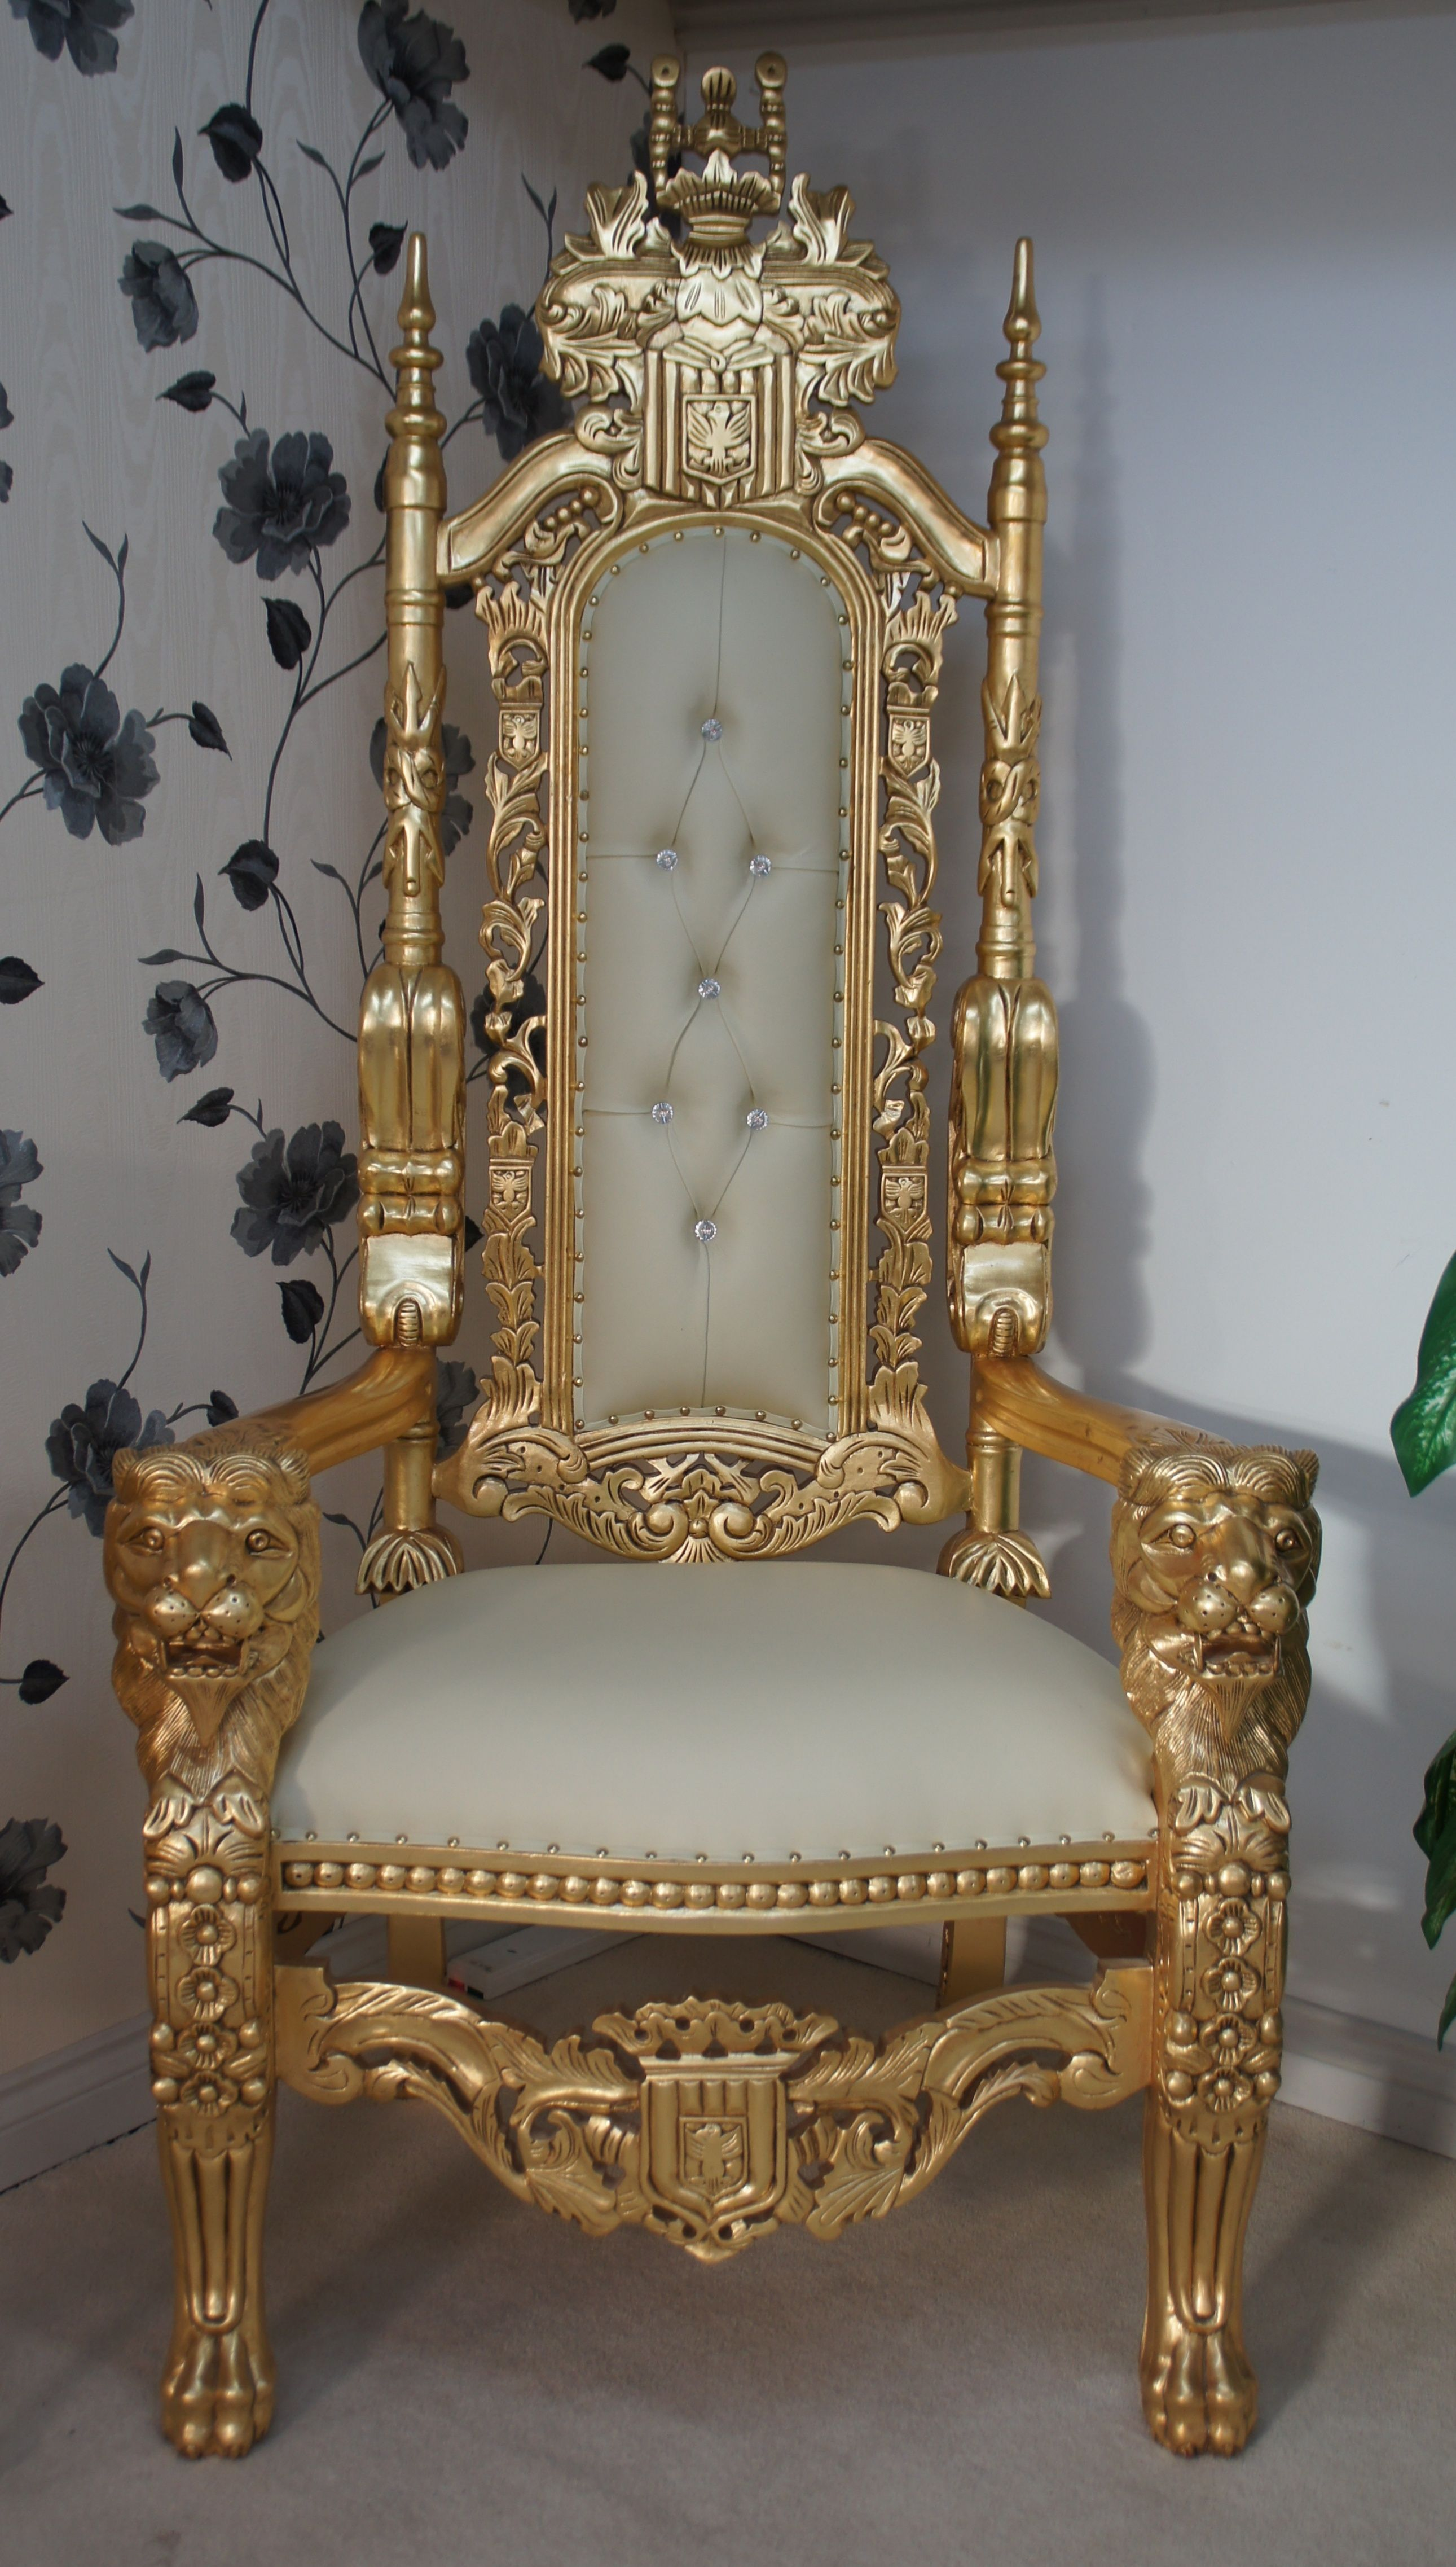 Lion Chair Lion Throne Chair In Gold Leaf Cream Easiclean Faux